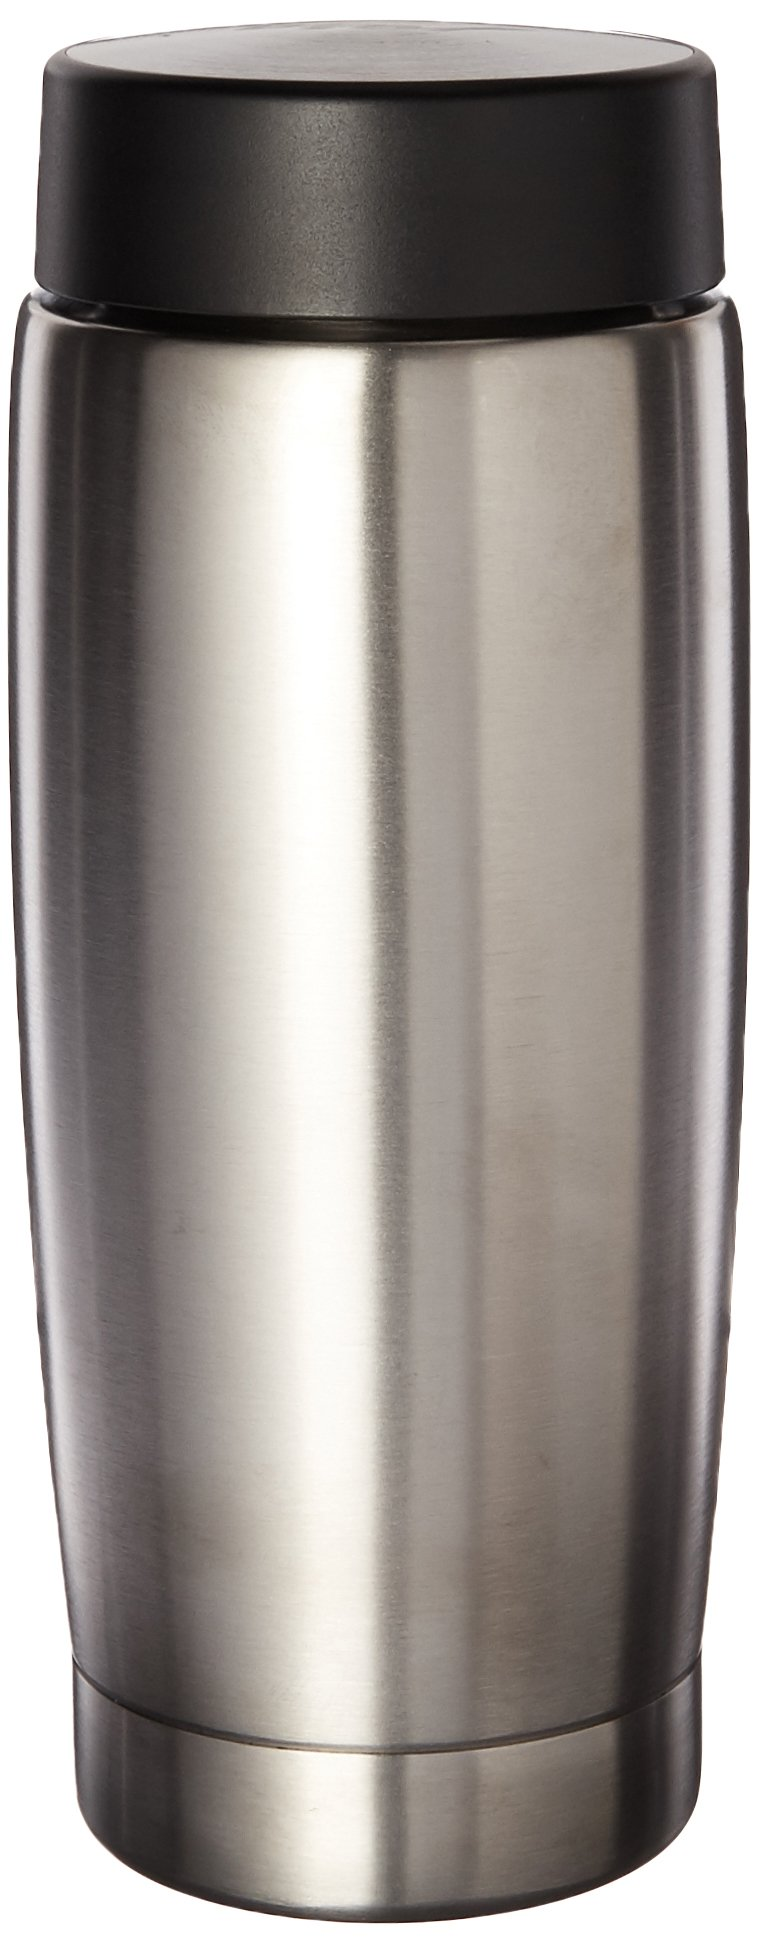 Jura 65381 Stainless-Steel 20-Ounce Milk Container with Lid by Jura